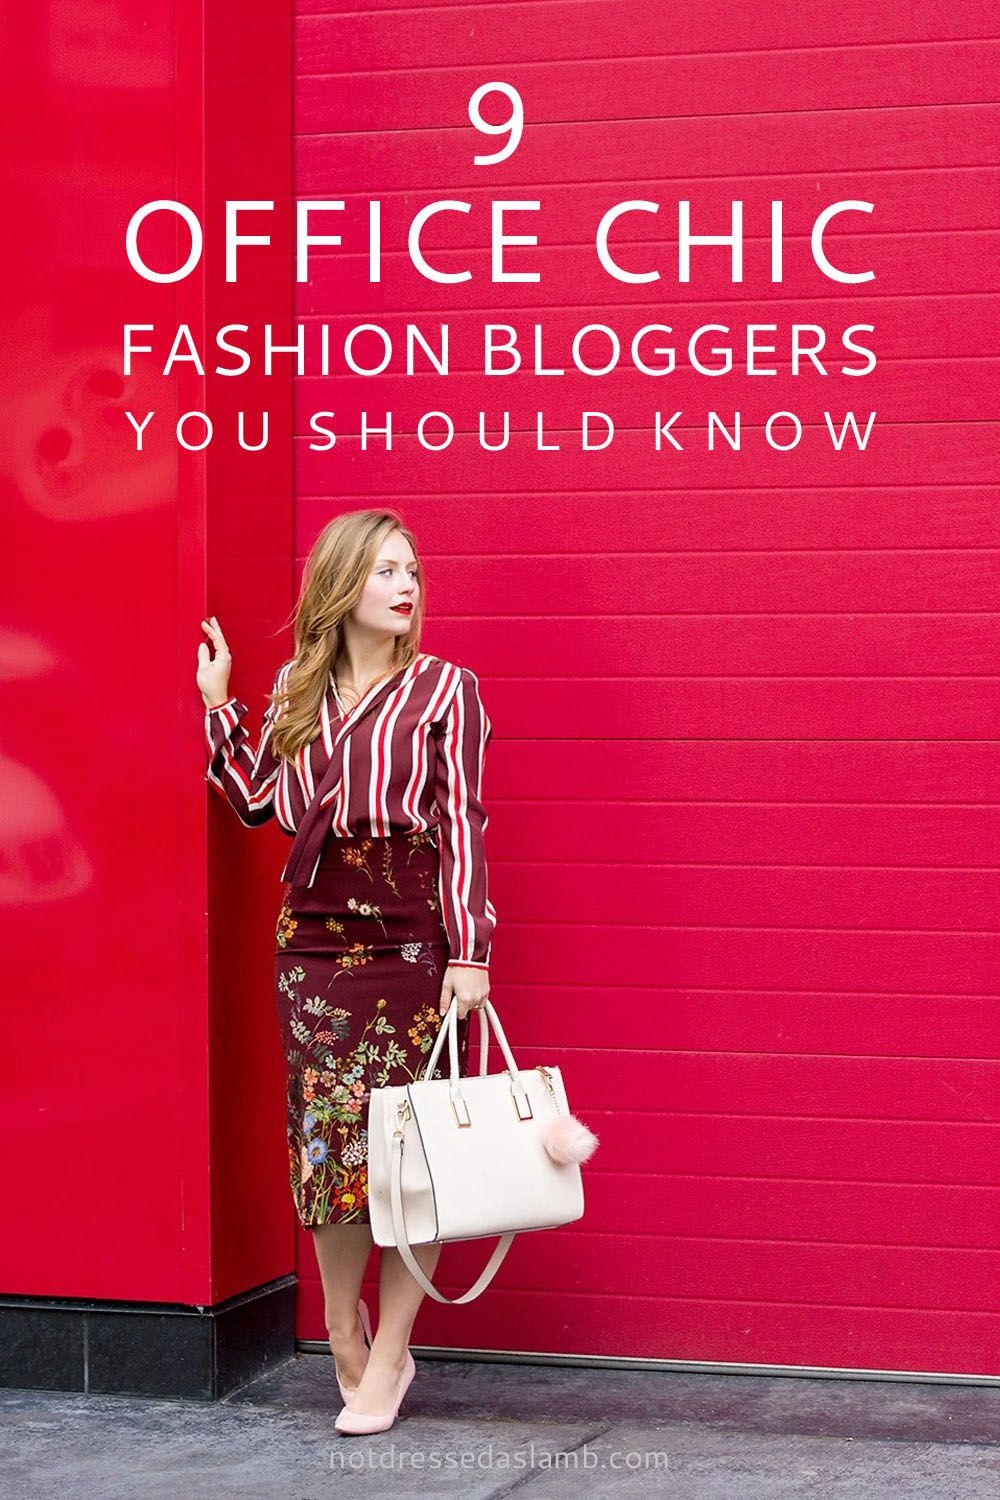 4047167245ee Workwear: 9 Office Chic Fashion Bloggers You Should Know | Not Dressed As  Lamb - Over 40 Fashion Blog